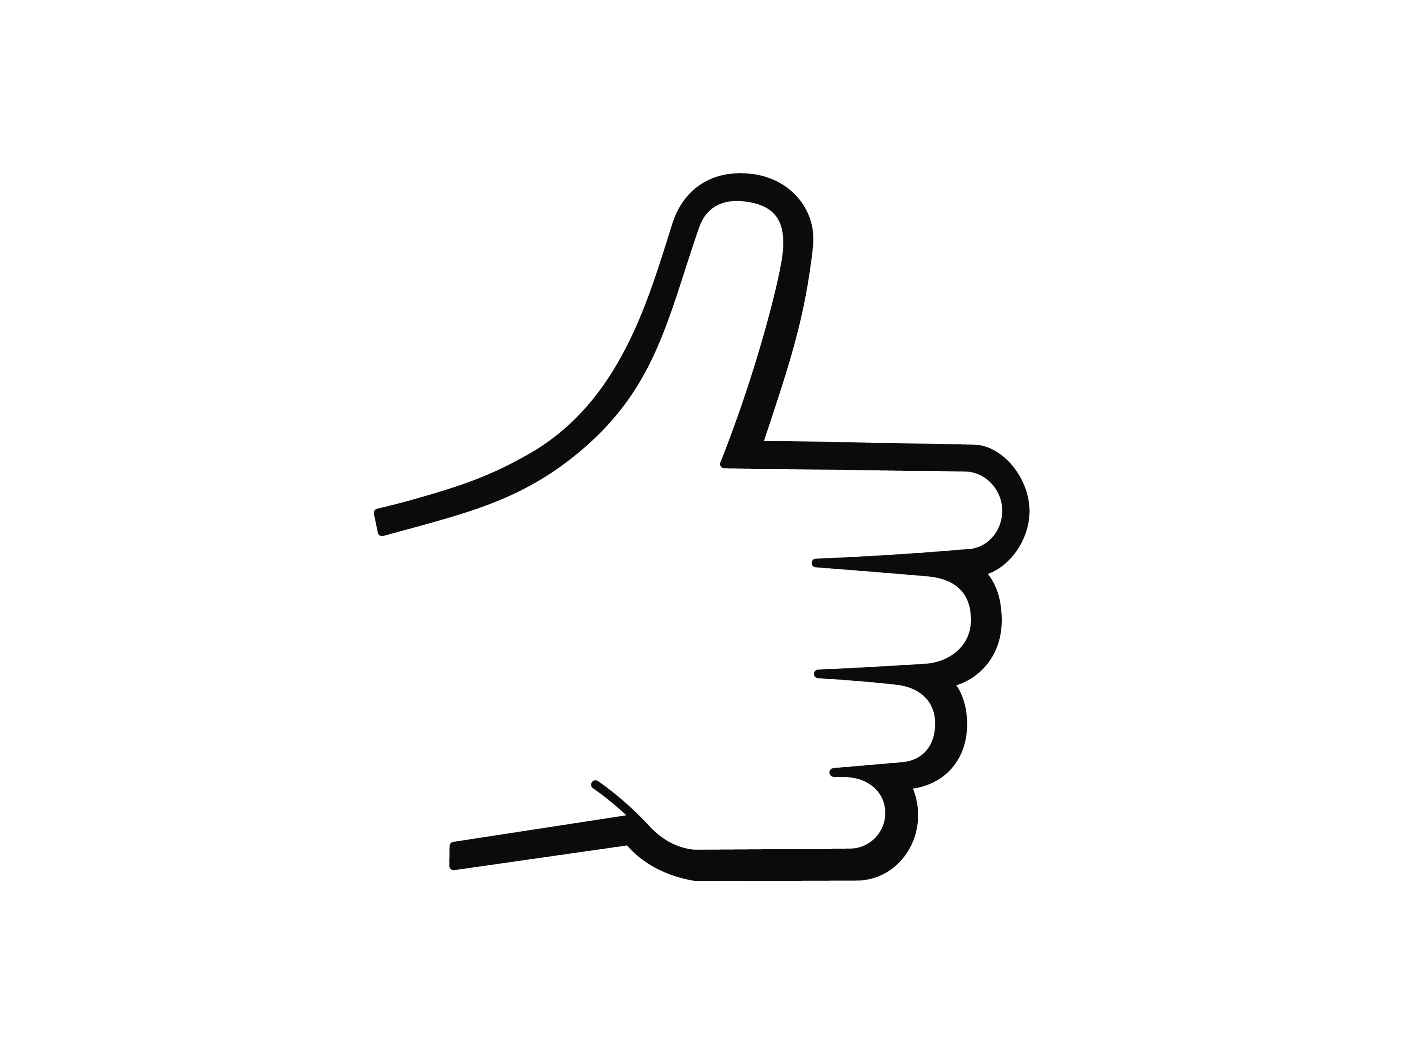 Thumbs up sign clipart svg transparent download Thumbs Up Sign Clipart - Clipart Kid svg transparent download